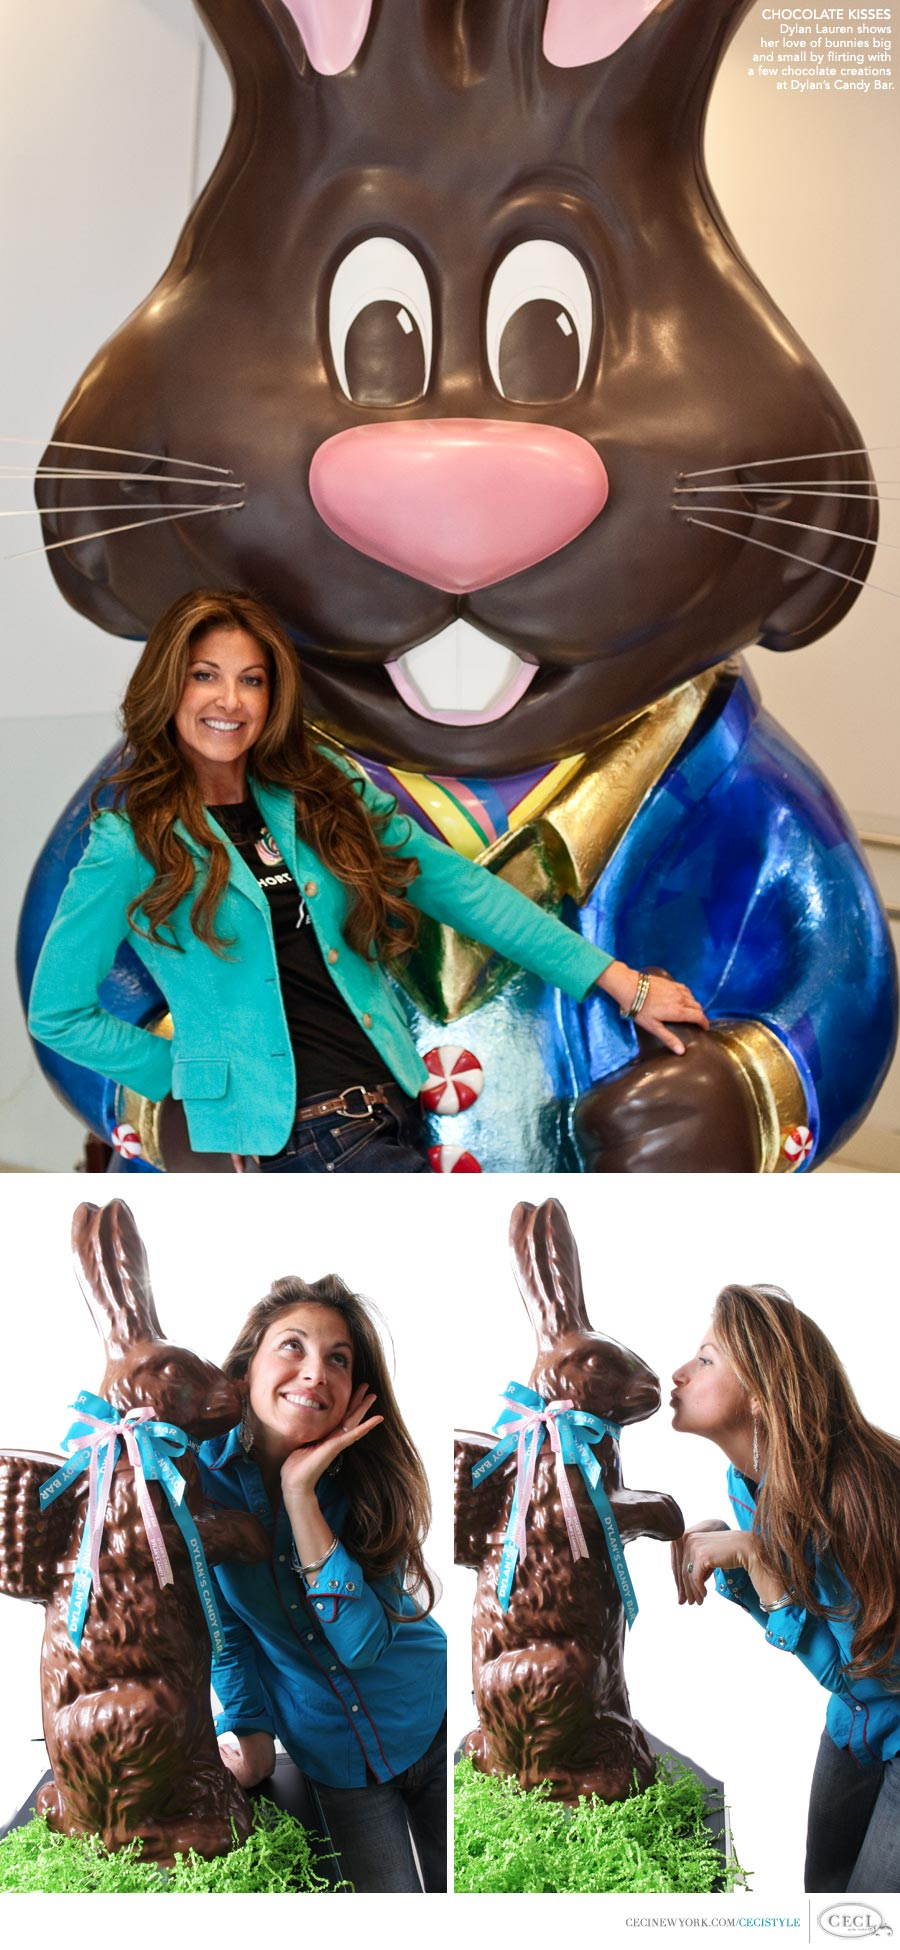 CHOCOLATE KISSES: Dylan Lauren shows her love of bunnies big and small by flirting with a few chocolate creations at Dylan's Candy Bar.